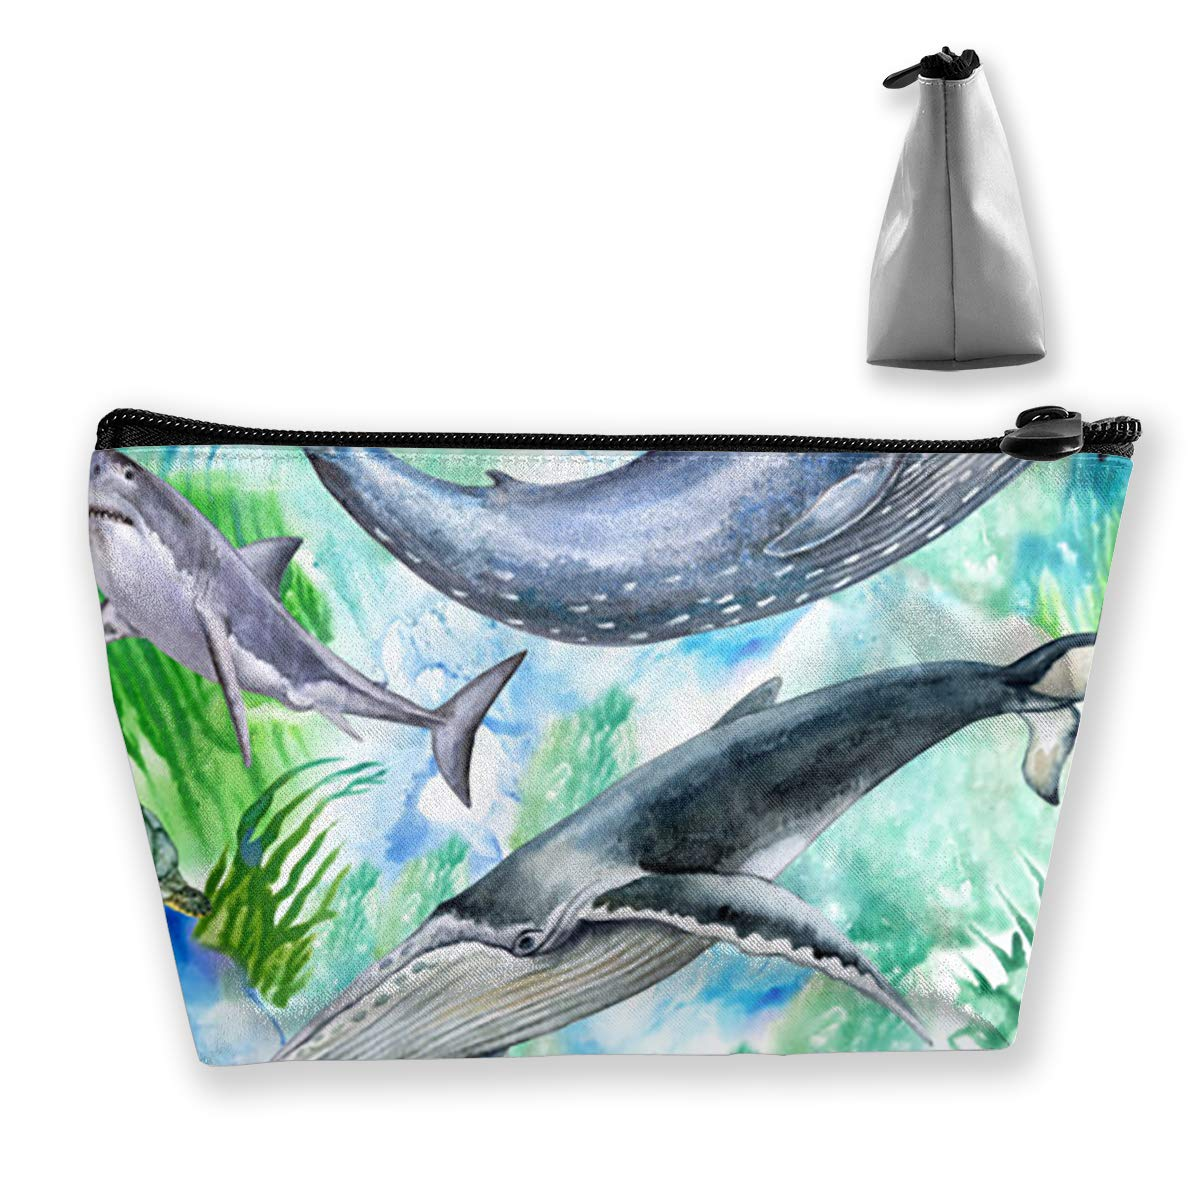 Make Up Bag Watercolor Sea Life Sea Creatures Whale Travel Makeup Bag Cosmetic Bag Lage Toiletry Bags for Women